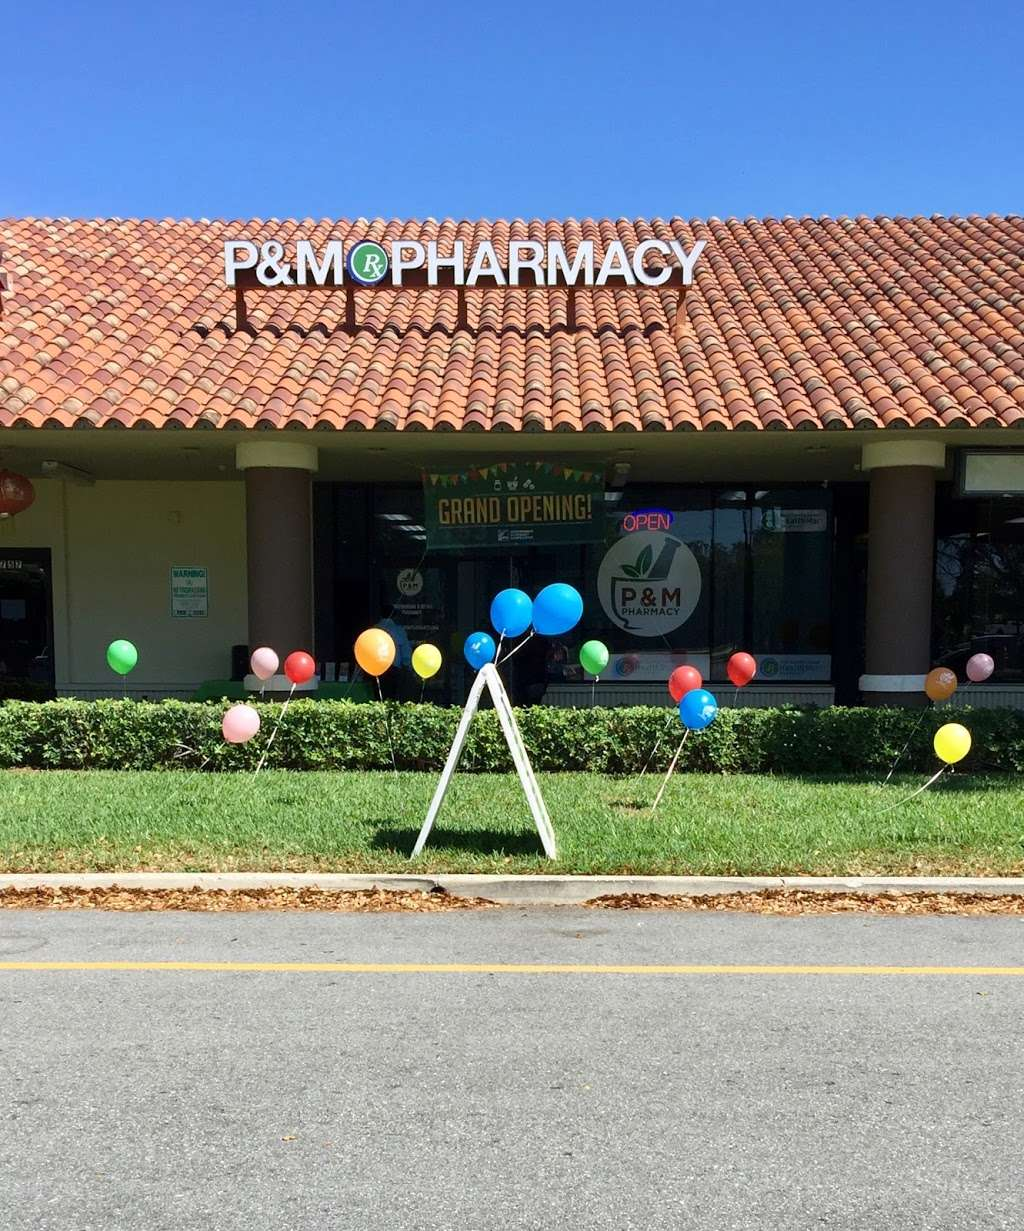 P&M Pharmacy | Greenacres Pharmacy - pharmacy  | Photo 7 of 10 | Address: 7753 Lake Worth Rd, Greenacres, FL 33467, USA | Phone: (561) 660-8650